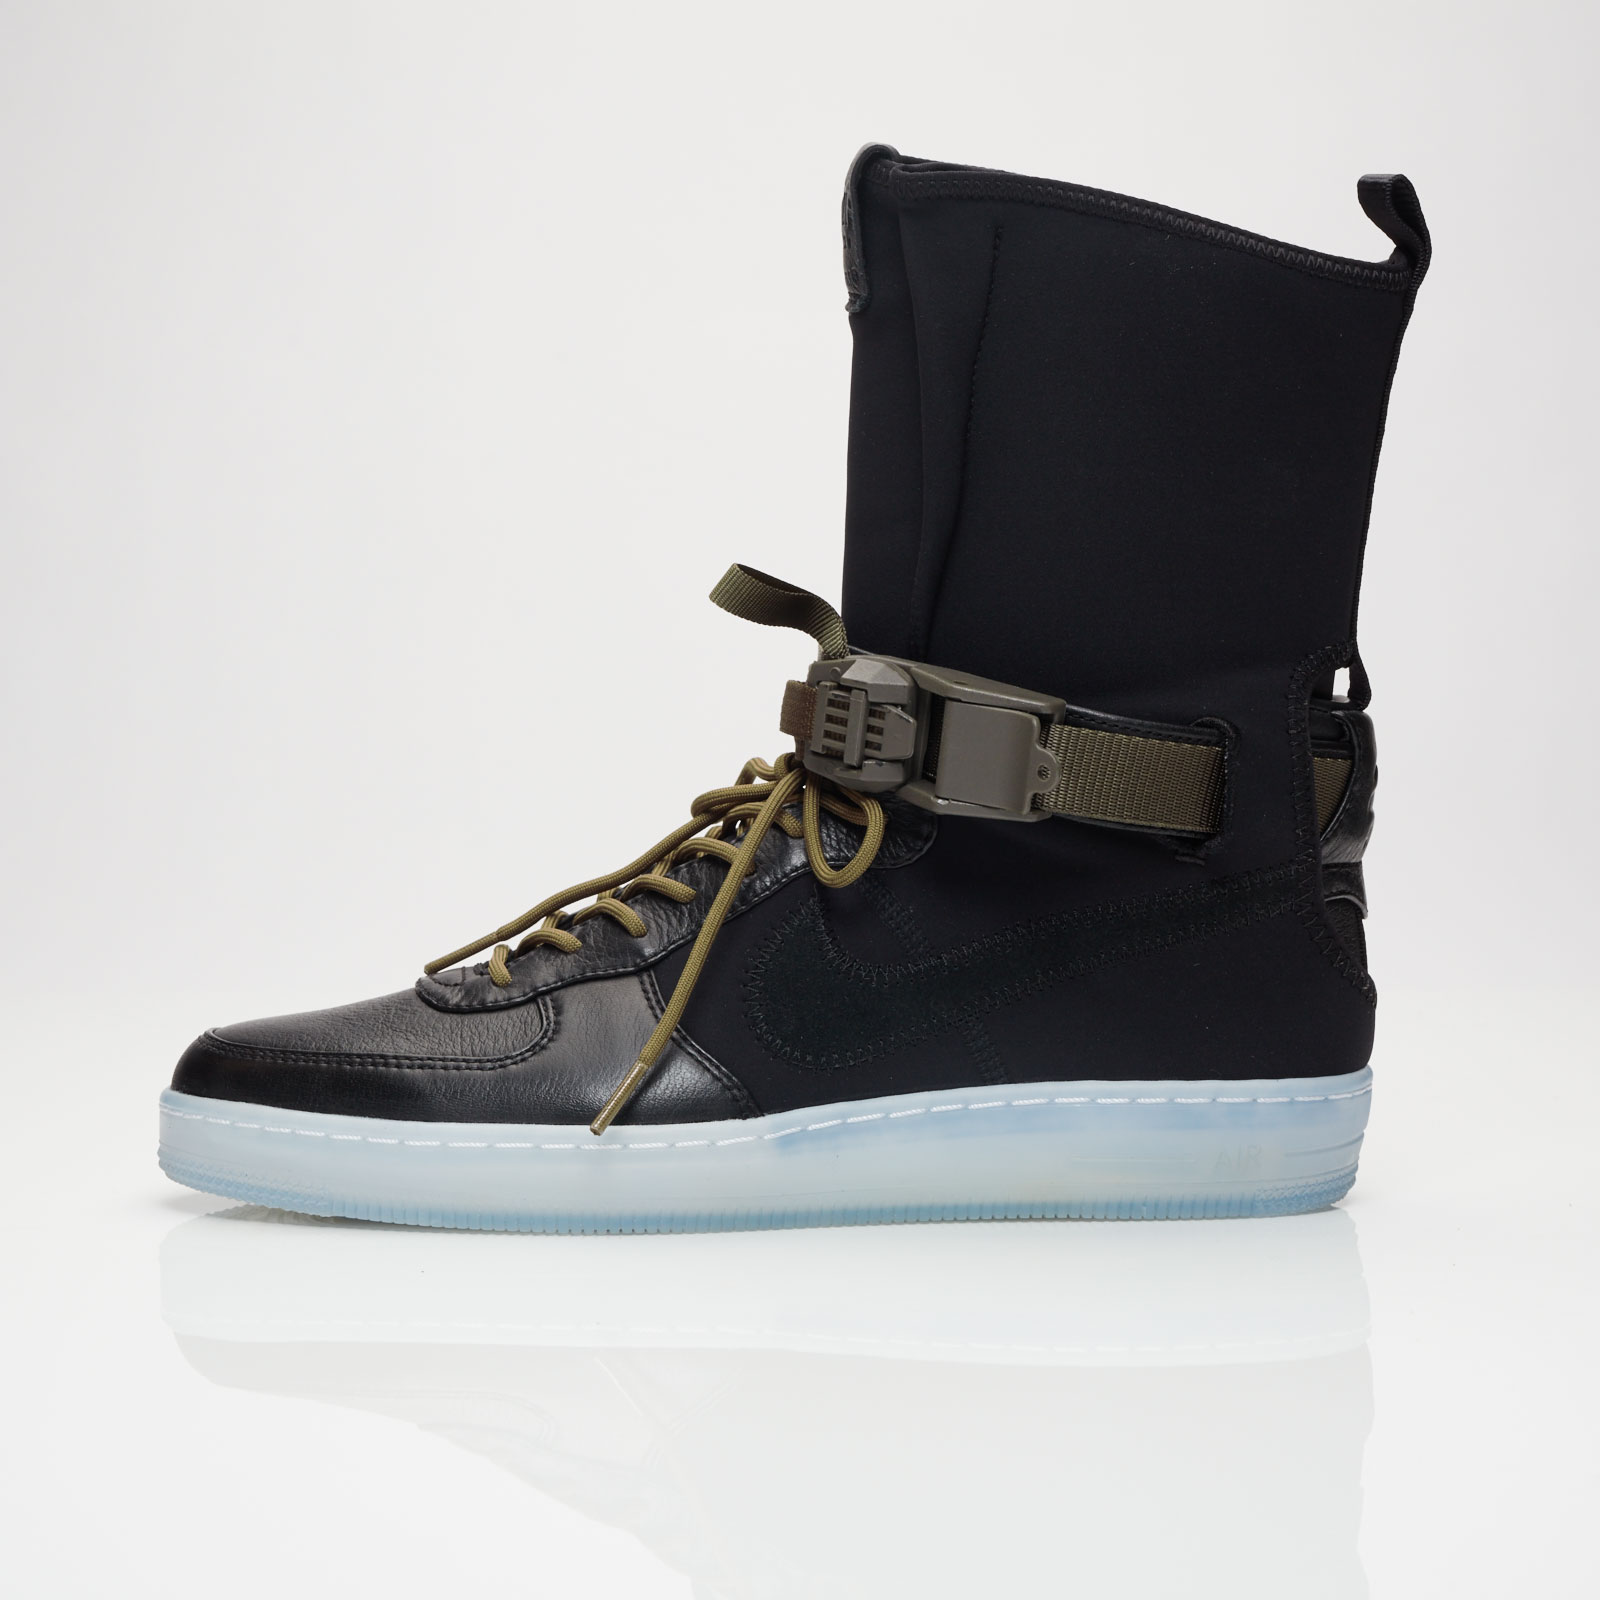 Af1 003 I Acronym Hi Sp Sneakersnstuff Downtown Nike 649941 kN0PXw8nO